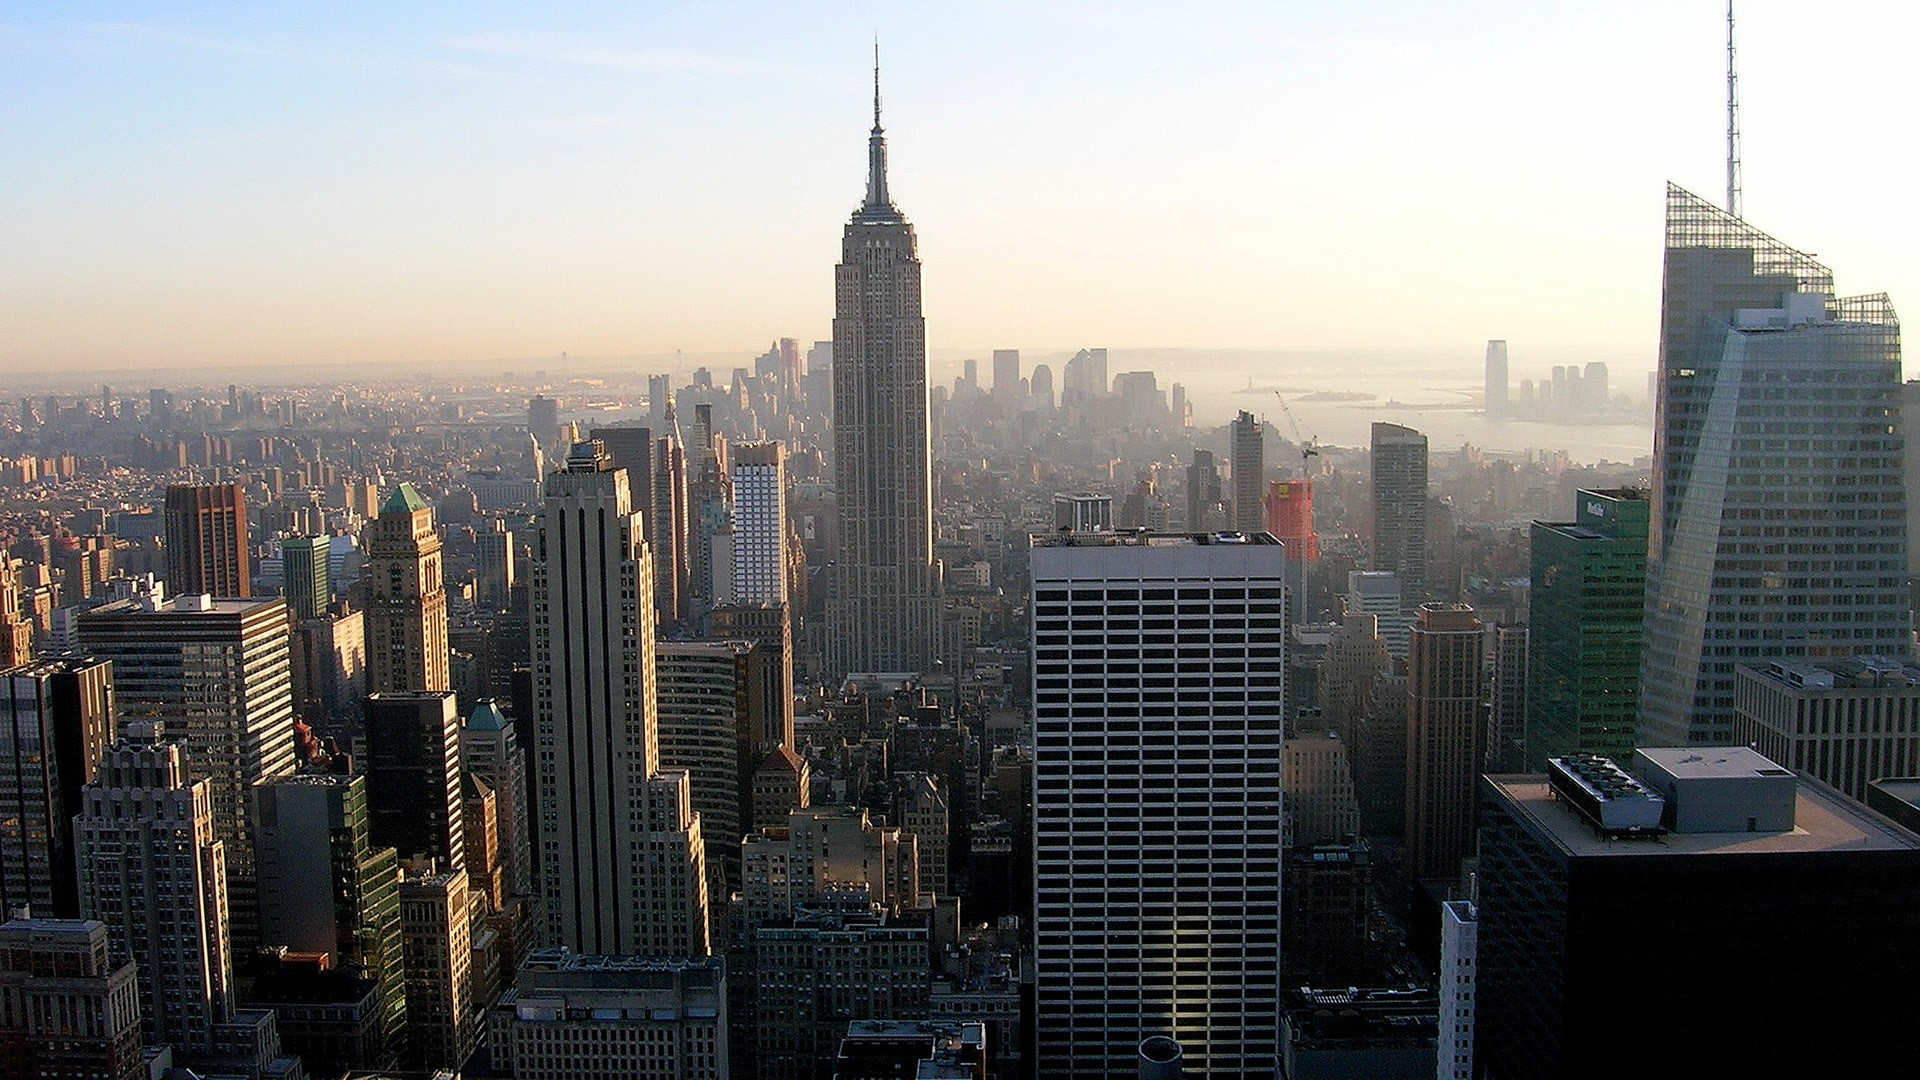 Pictures of New York